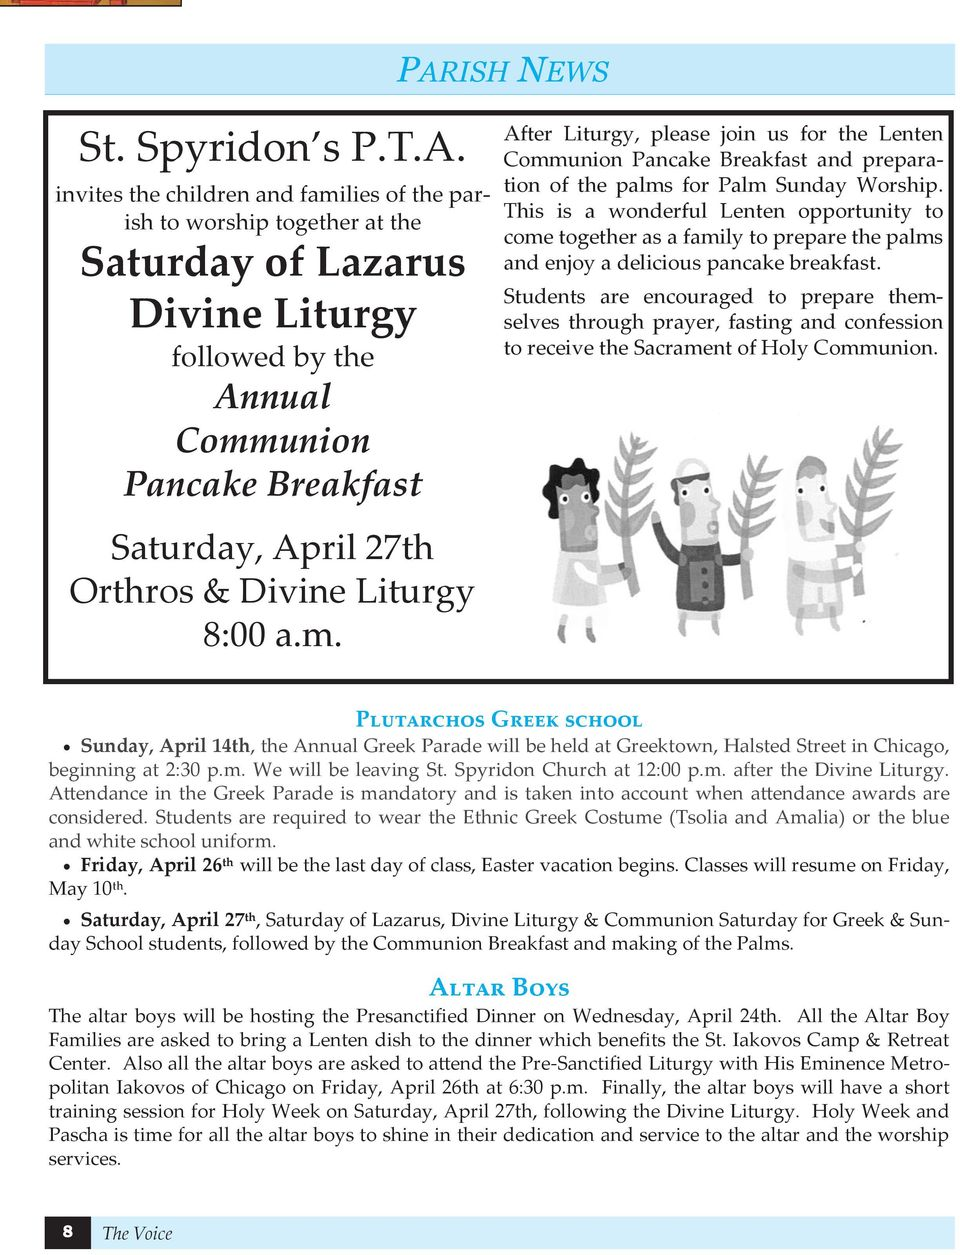 This is a wonderful Lenten opportunity to come together as a family to prepare the palms and enjoy a delicious pancake breakfast.